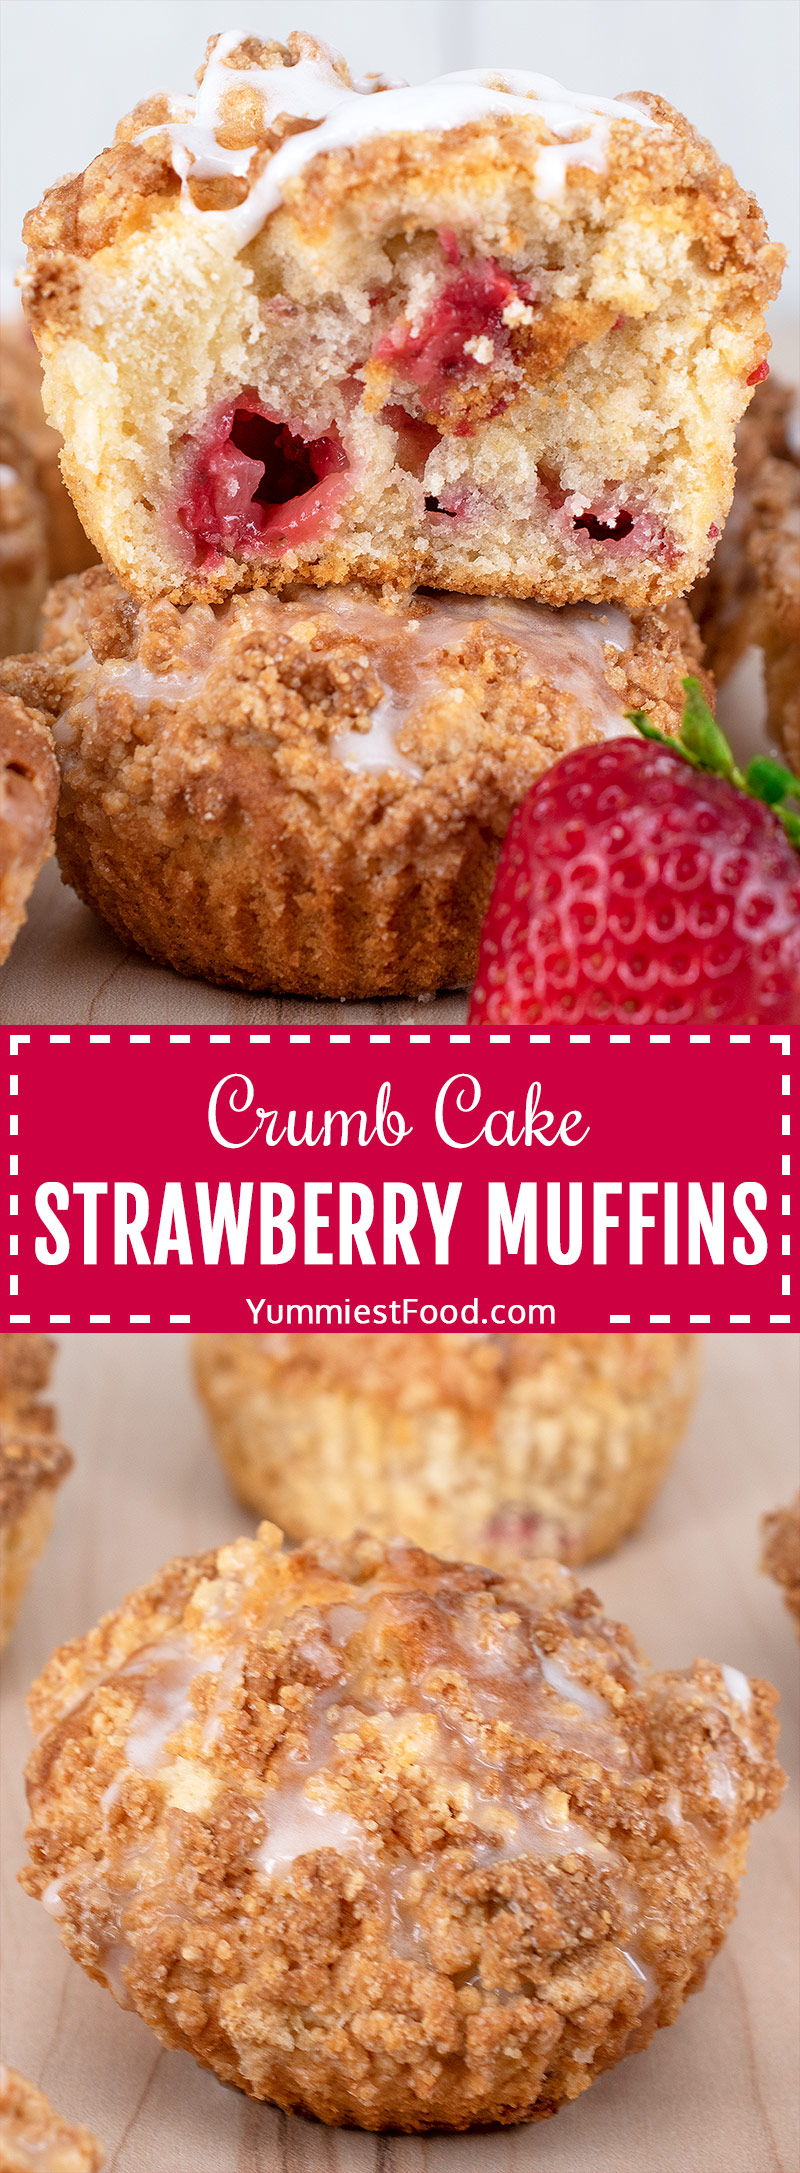 Crumb Cake Strawberry Muffins filled with freshly chopped strawberries that go really well together with the buttery crumble topping and the sweetness of the drizzle.